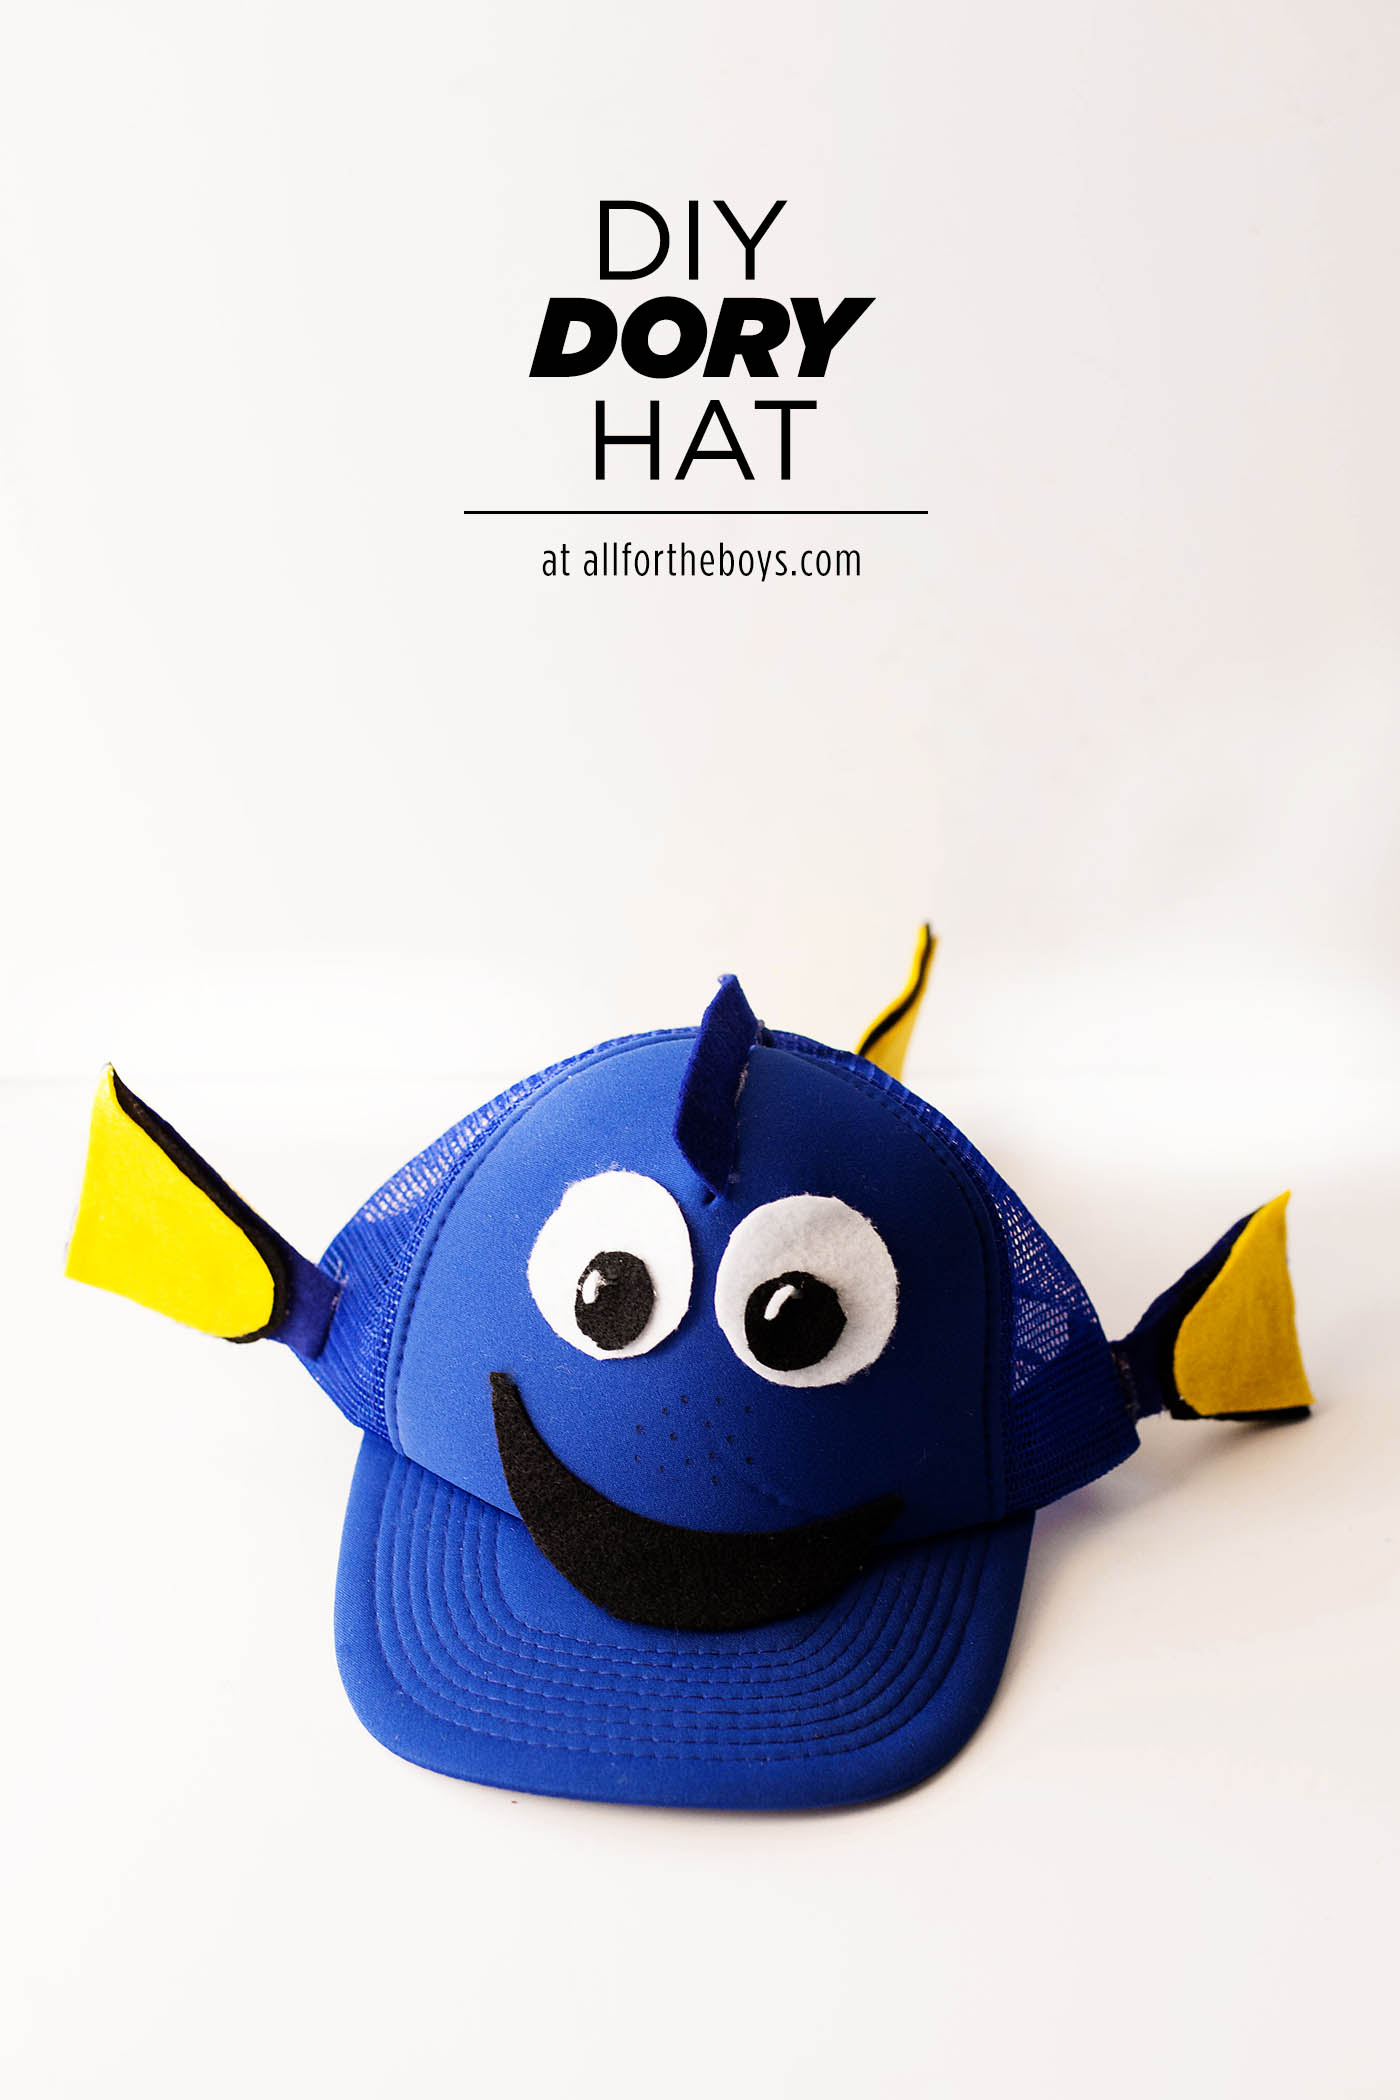 DIY Finding Dory hat perfect for an easy costume, trip to Disneyland or Walt Disney World, for cosplay or just because you love Dory!